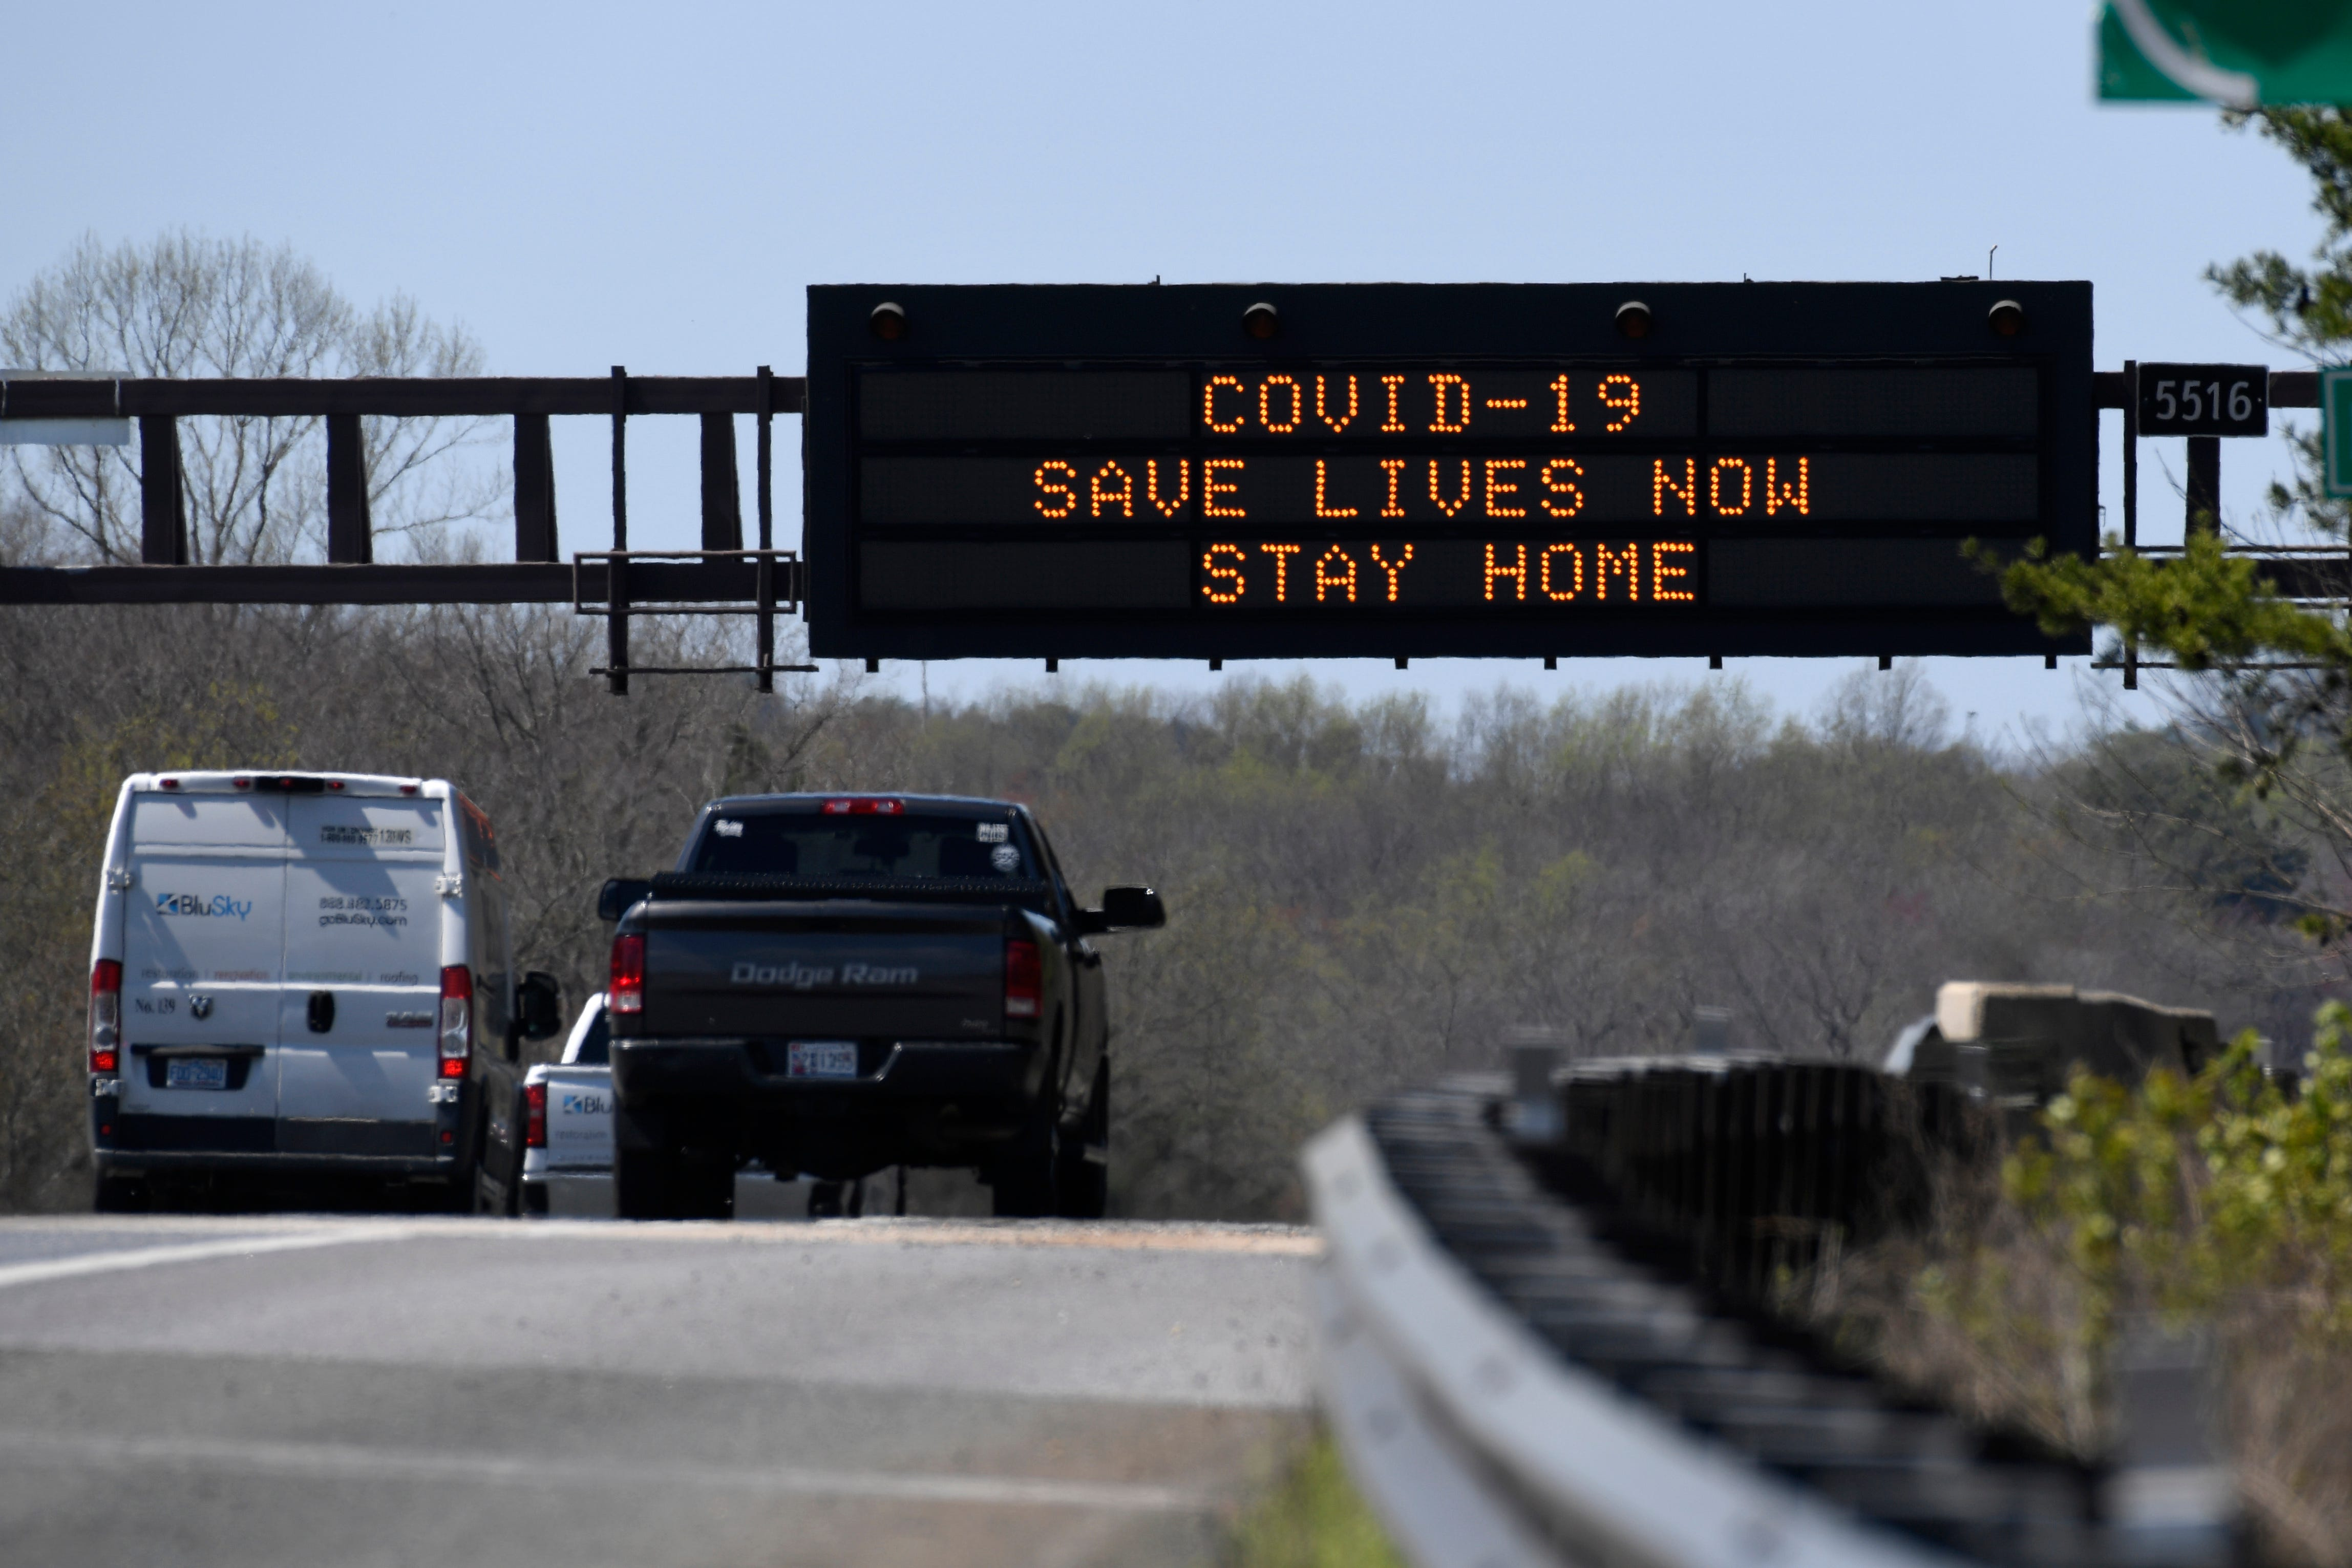 """A sign about the coronavirus is displayed over Route 50 in Davidsonville, Md., on Monday, March 30, 2020. Maryland Gov. Larry Hogan issued a """"stay-at-home"""" directive in response to the coronavirus effect on Monday. """"No Maryland resident should be leaving their home unless it is for an essential job or for an essential reason, such as obtaining food or medicine, seeking urgent medical attention or for other necessary purposes,"""" Hogan said at a news conference on the Maryland State House lawn."""